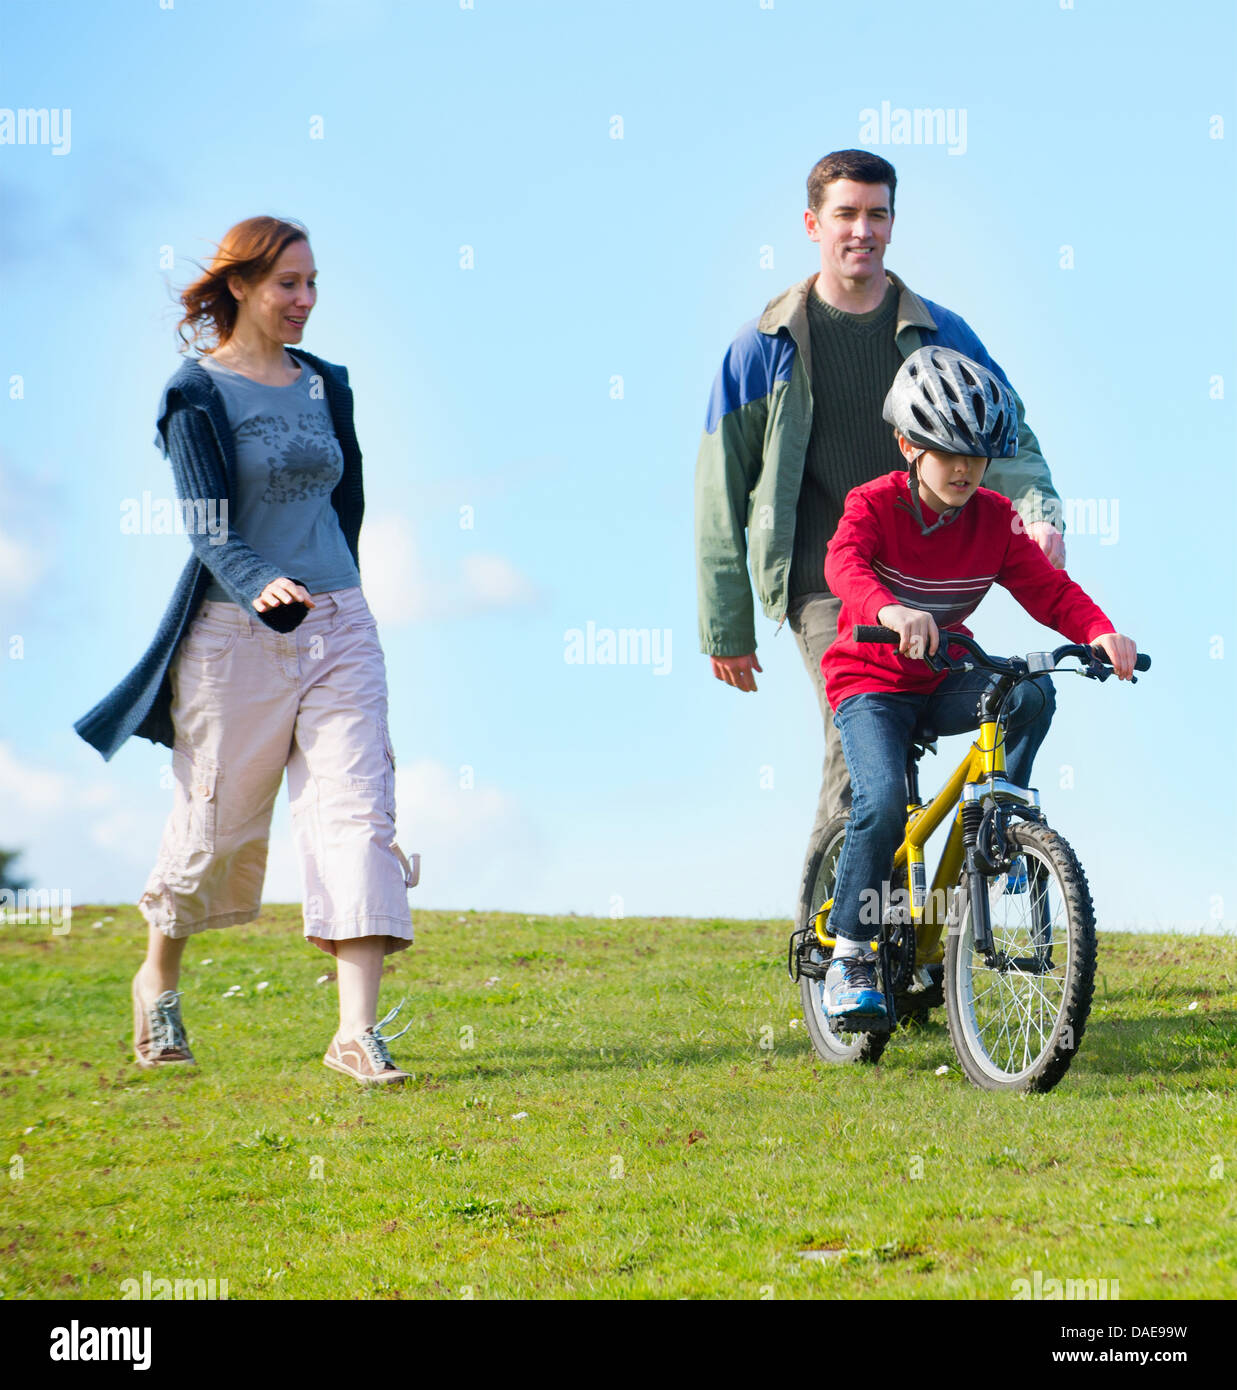 Parents watching son riding bicycle - Stock Image